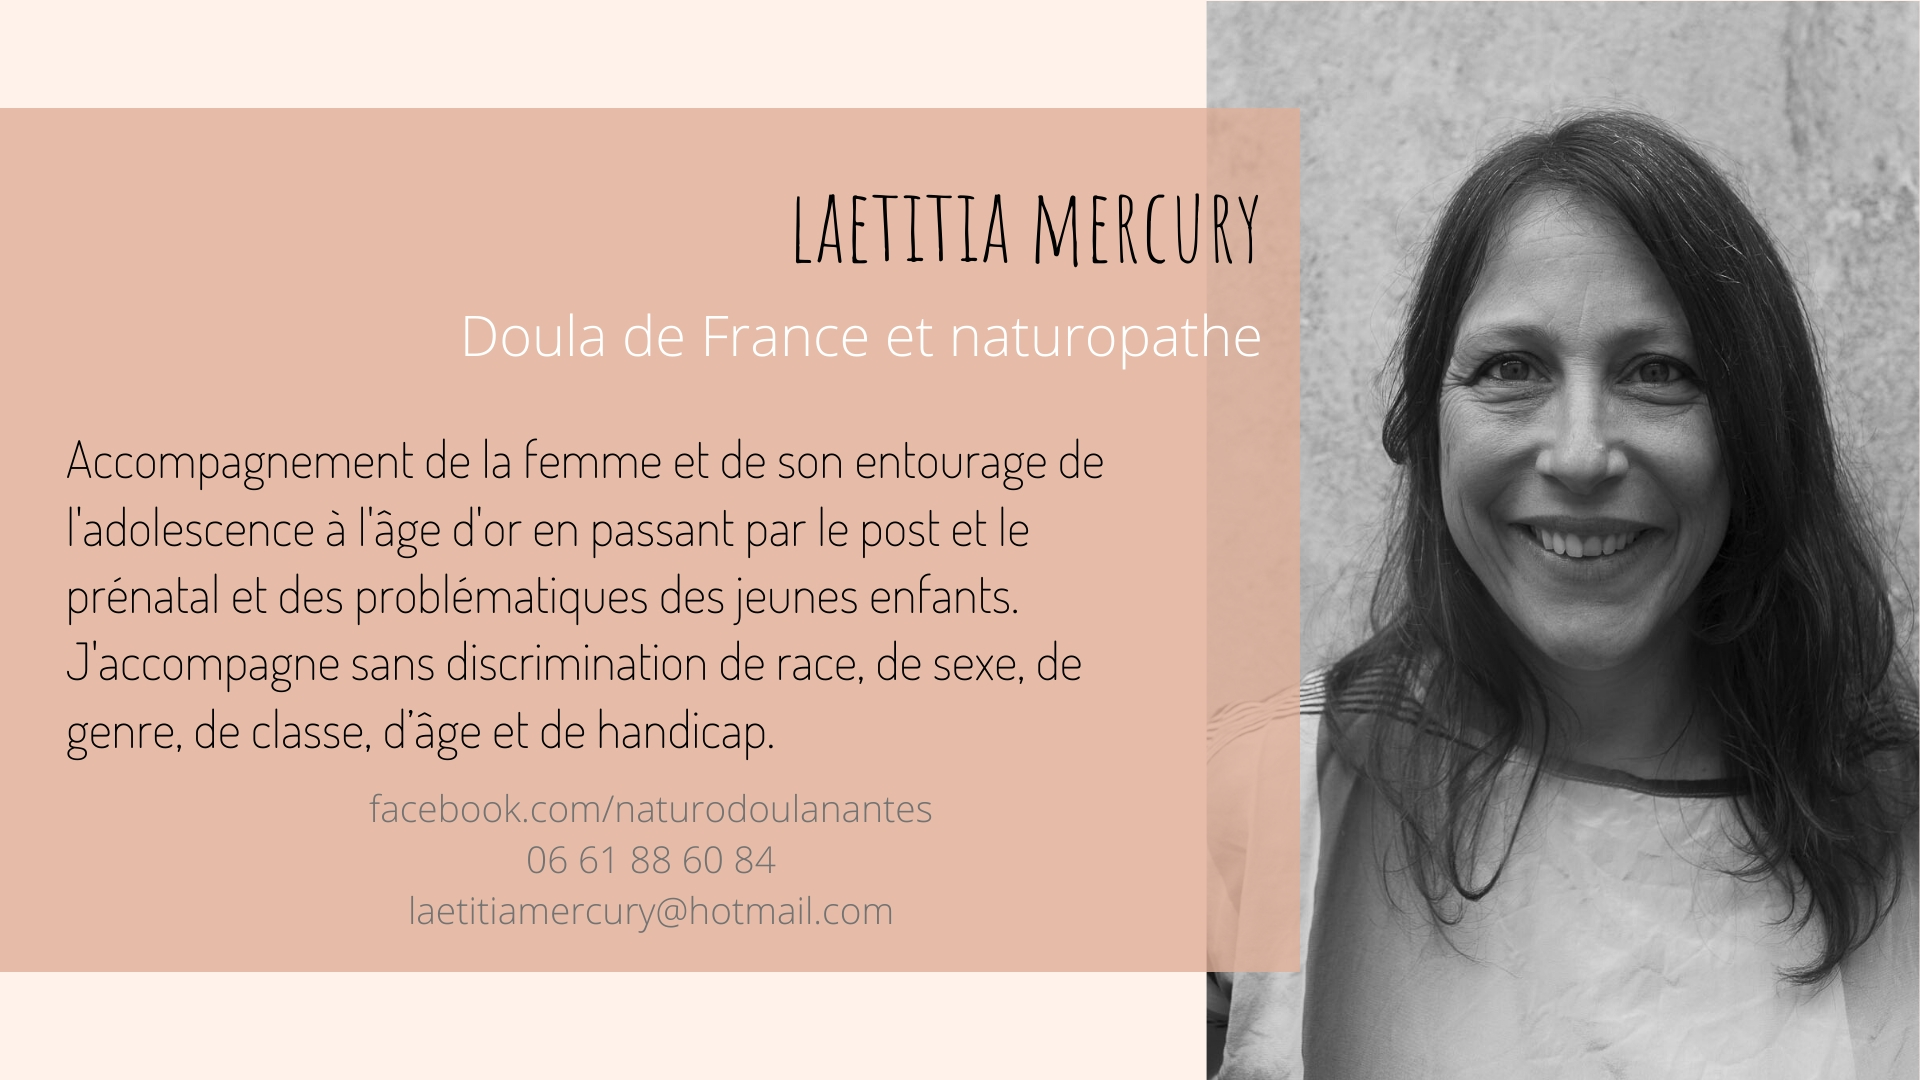 Laetitia Mercury